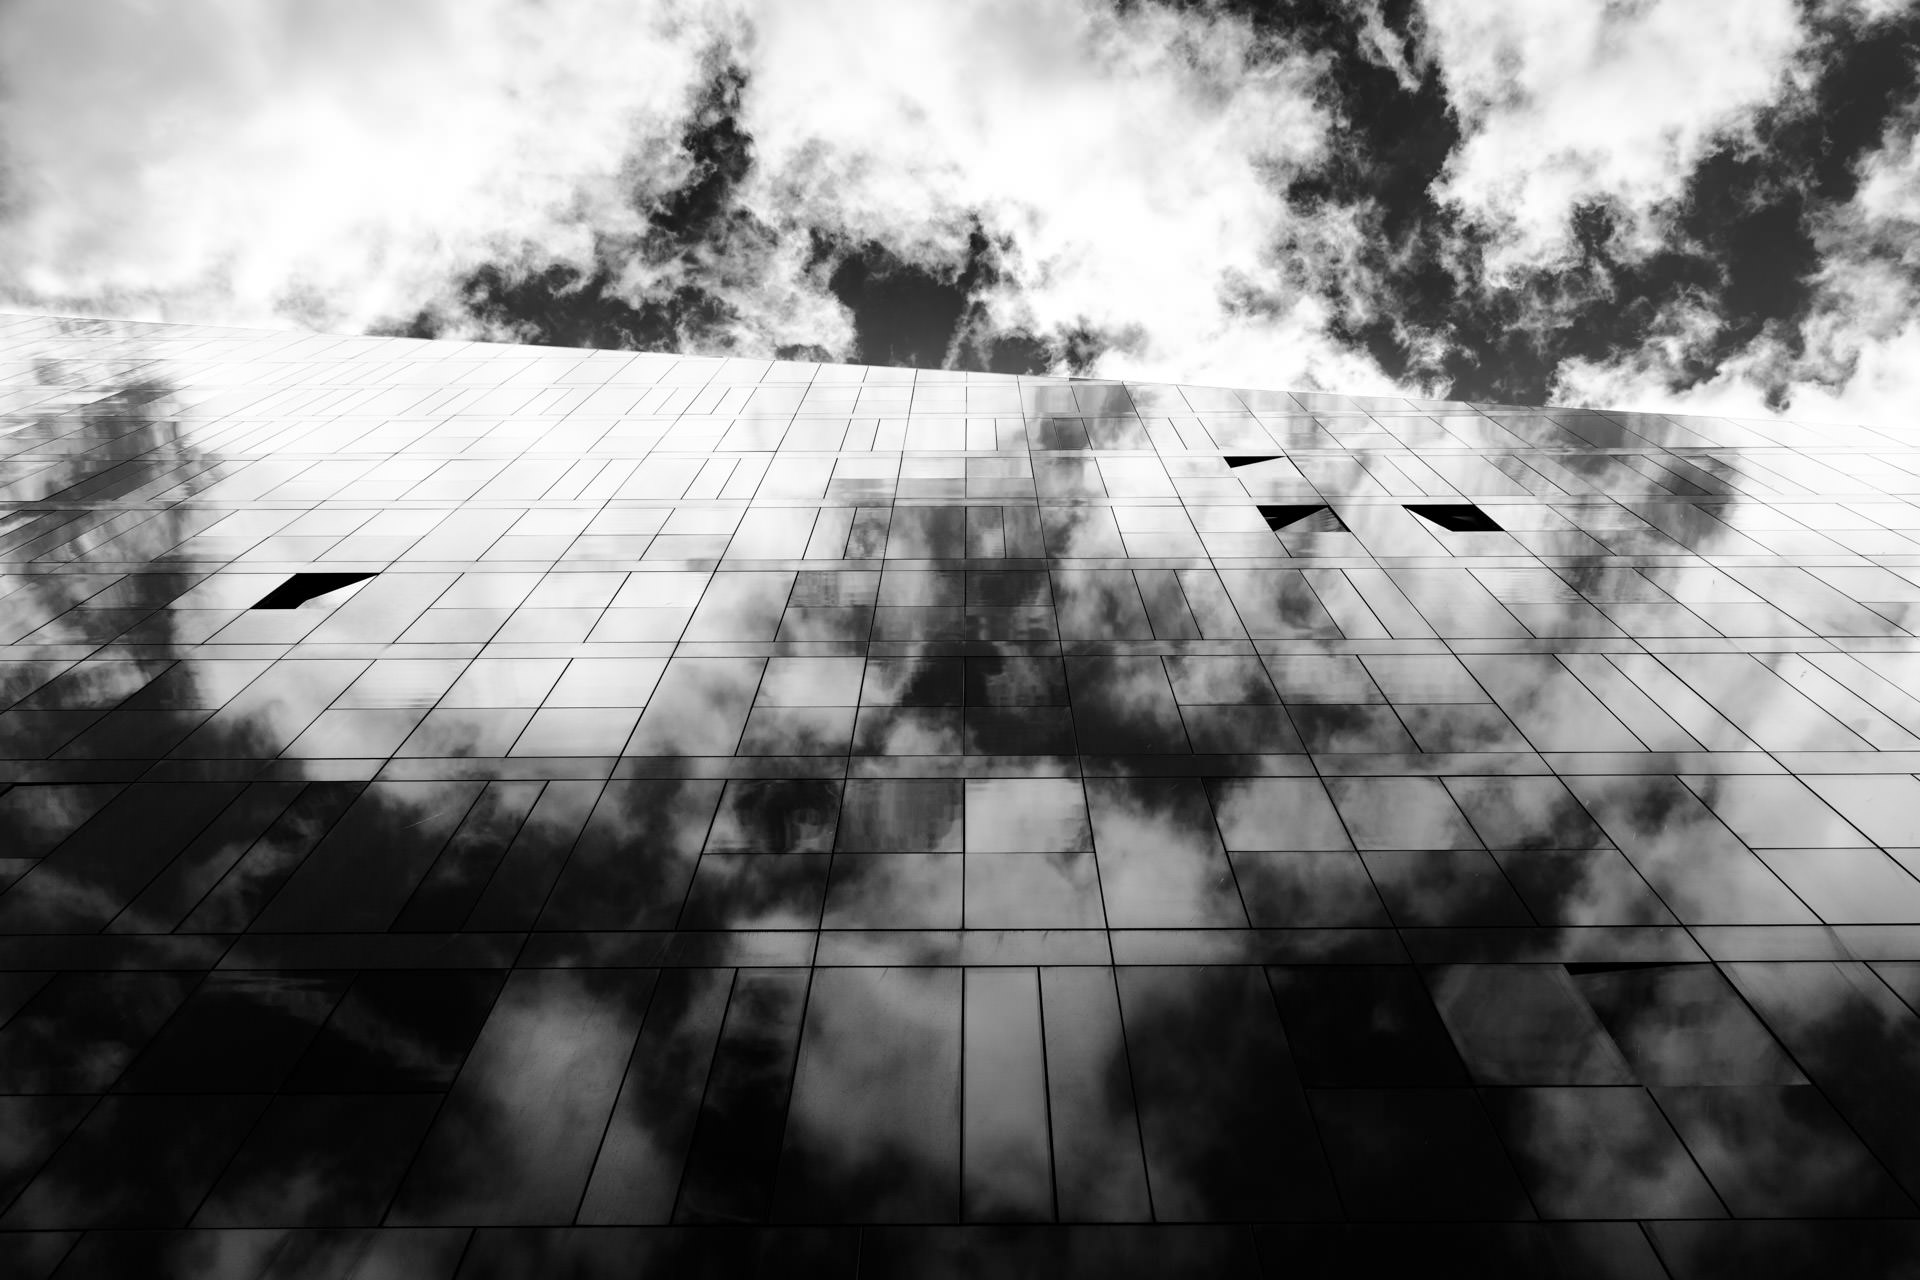 June - A cloudy reflection from the vast glass expanse of one of the  Mann Island  buildings.